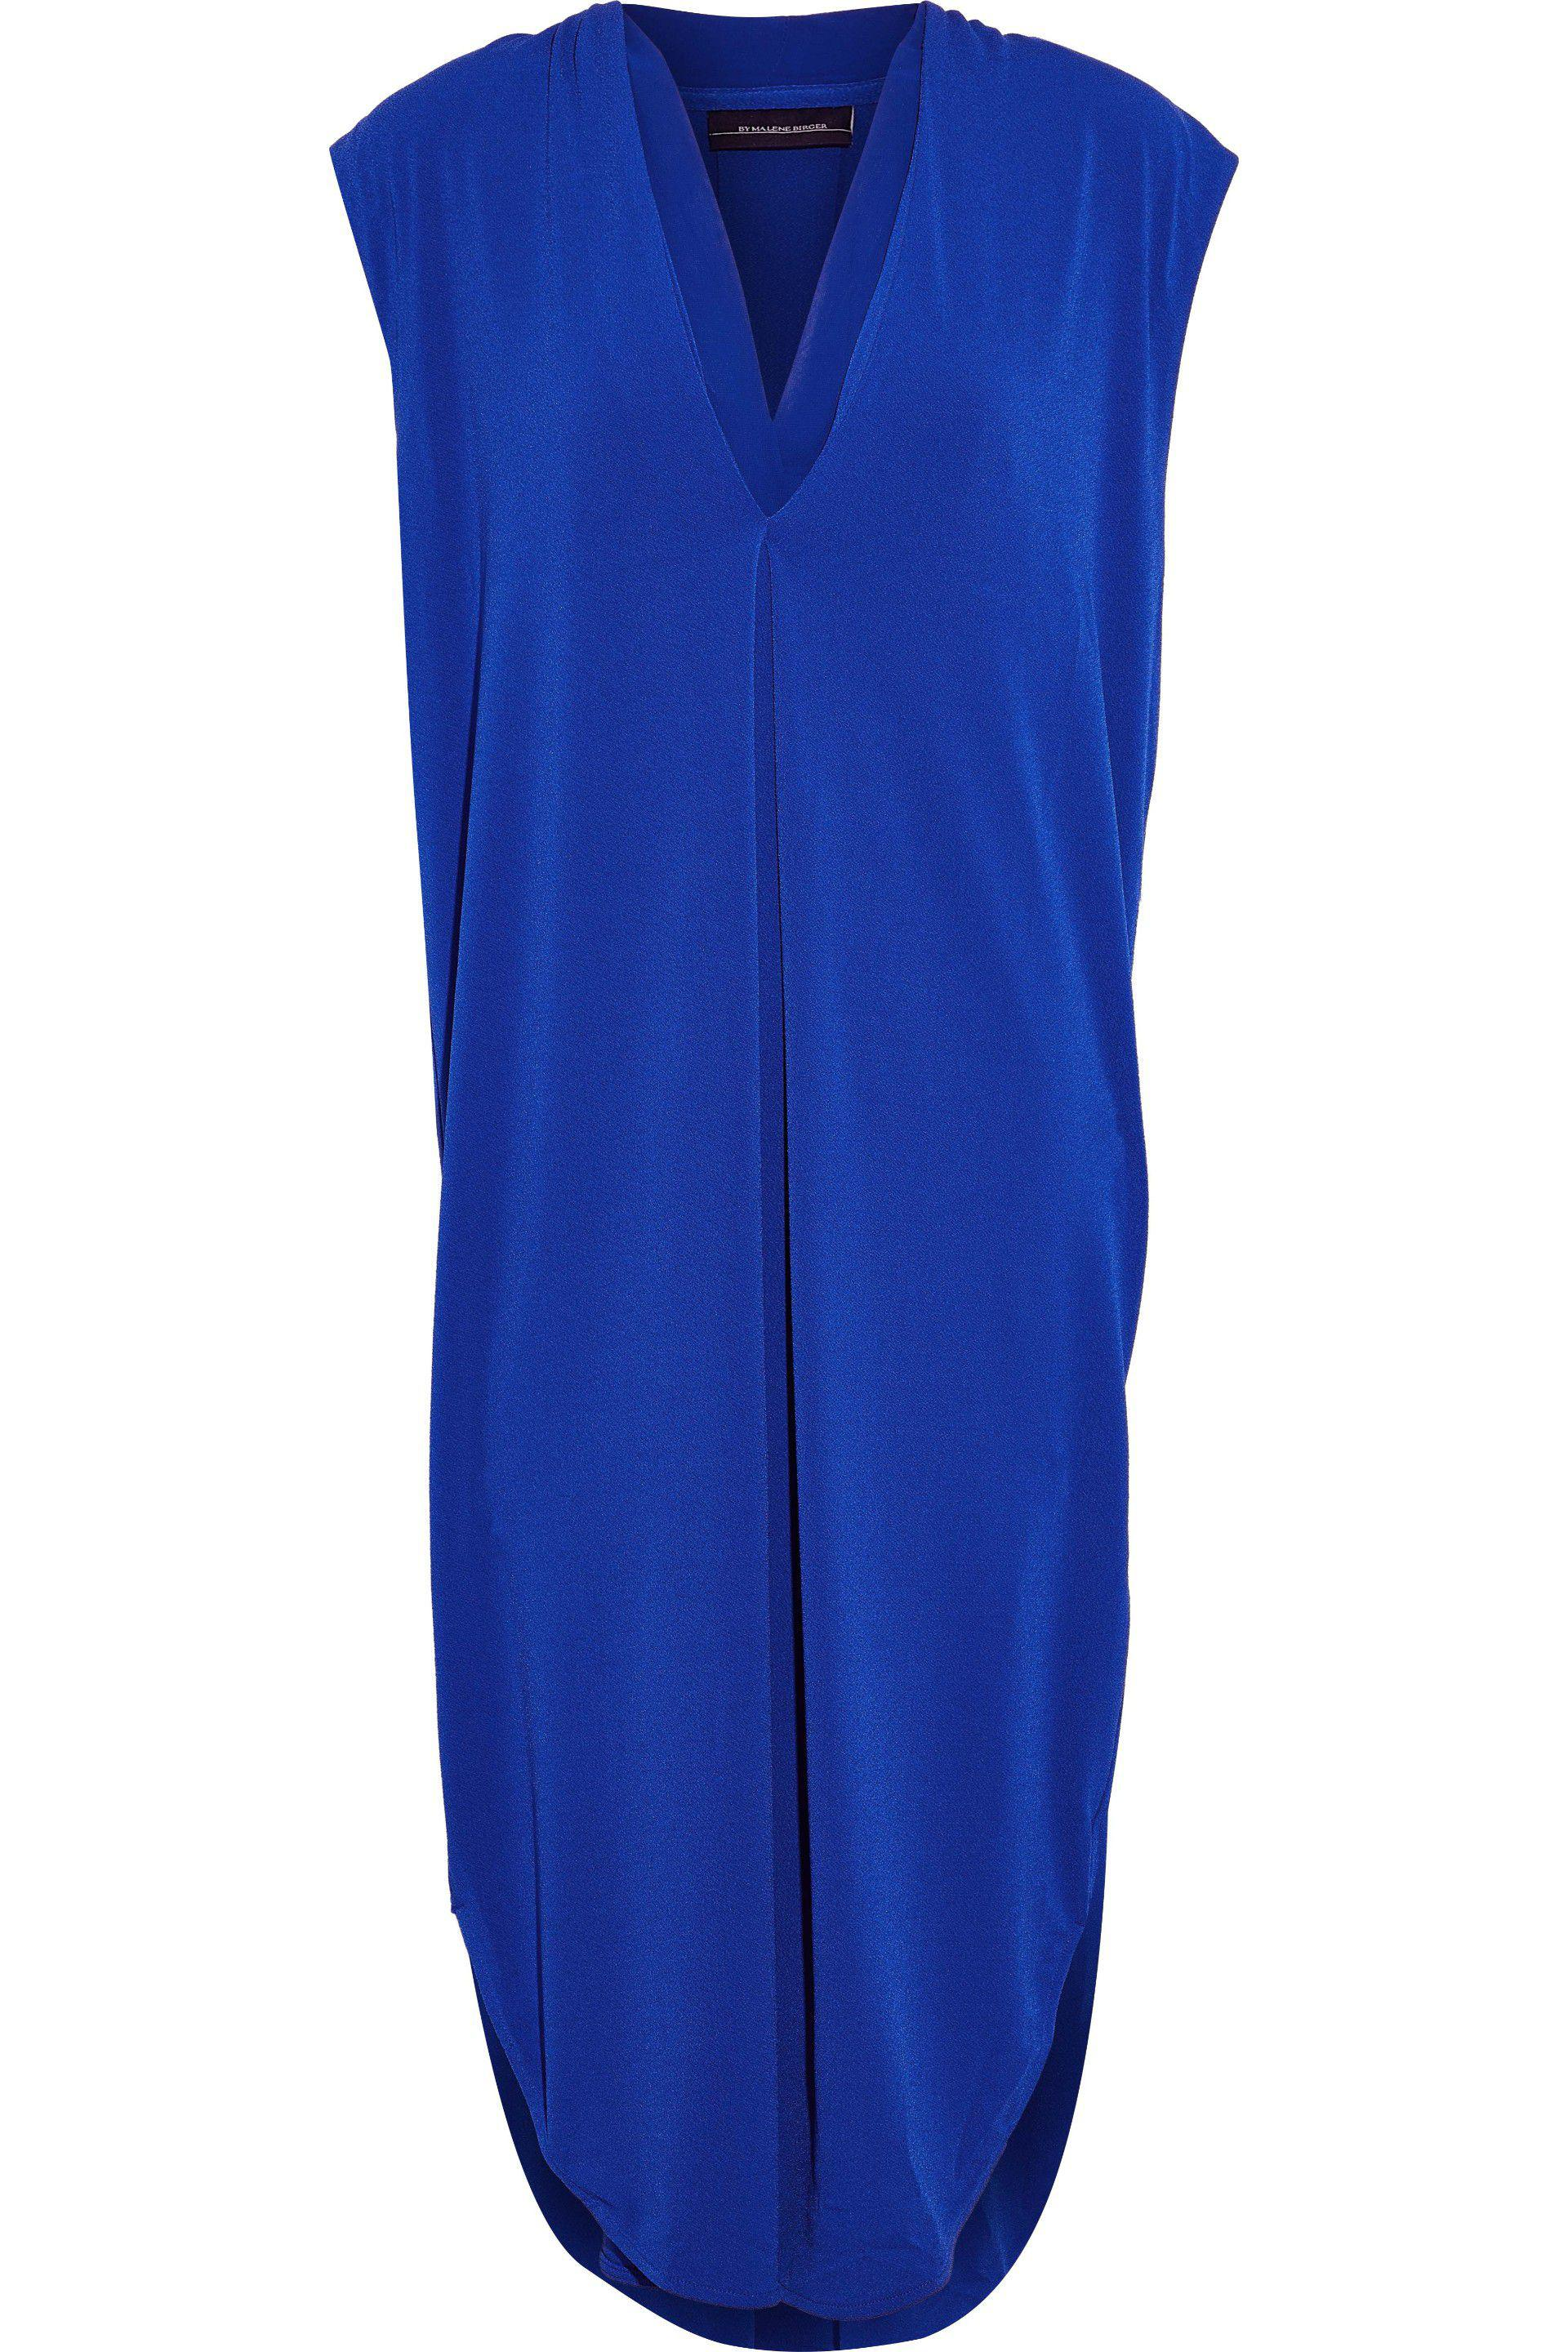 By Malene Birger Woman Knotted Crepe Dress Royal Blue Size XL By Malene Birger Clearance Visit New Free Shipping Fashion Style Cheapest Price Online Clearance Shop For Latest Collections wwwADPt